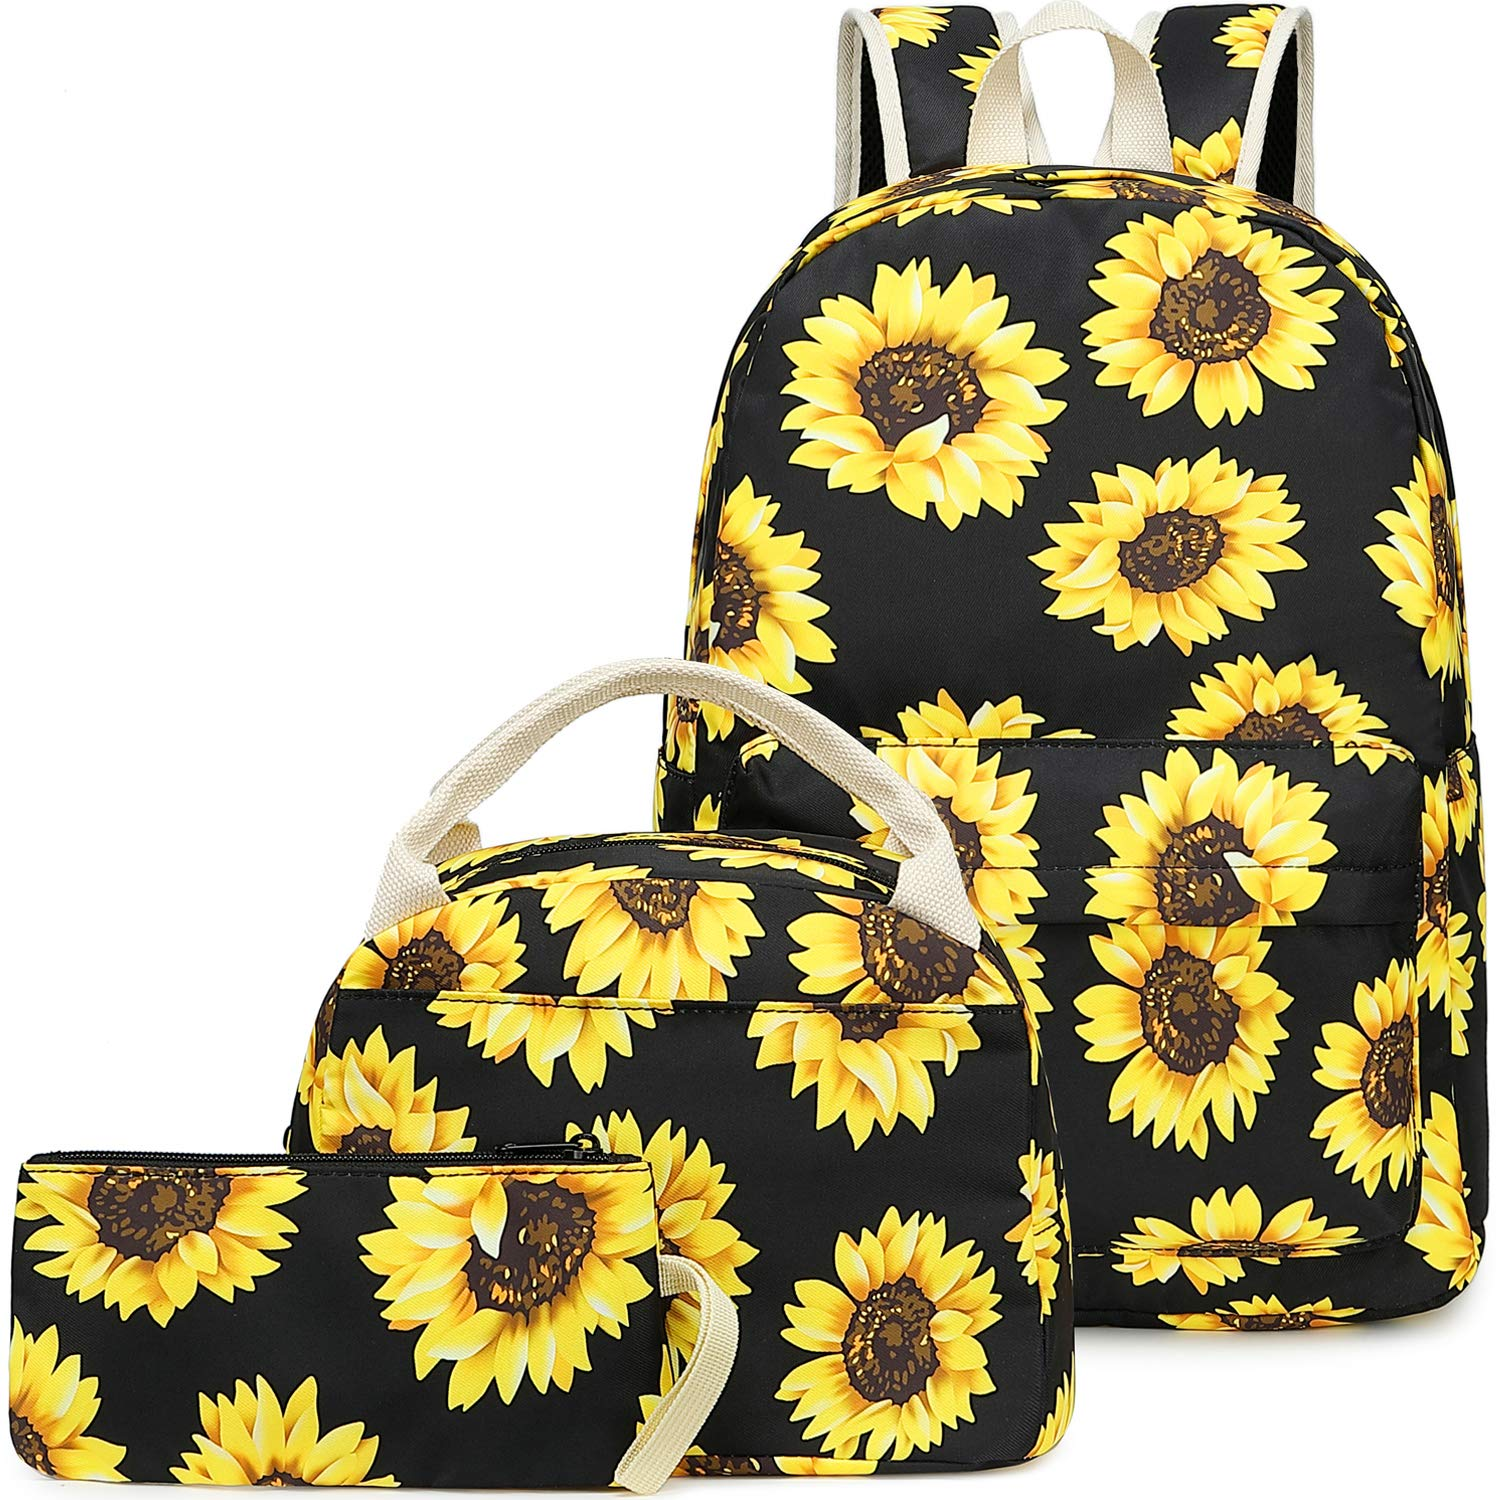 BLUBOON Girls School Backpack Bags Teens Bookbag with Lunch Box and Pencil Case Cute (Sunflower-E0057) by BLUBOON